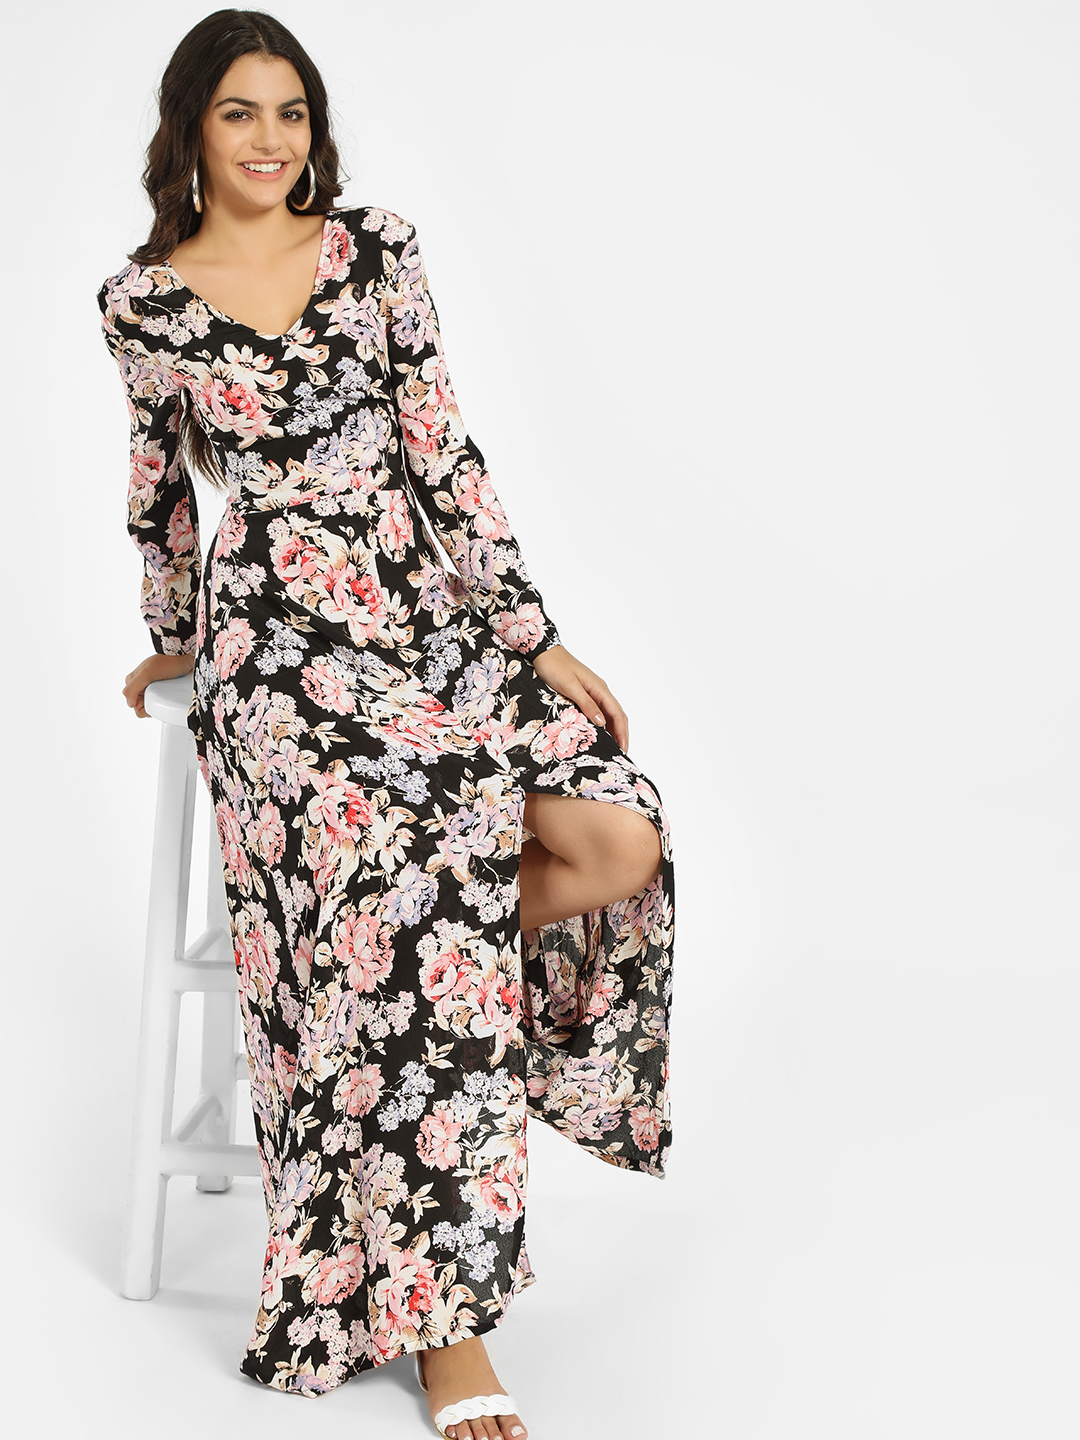 Ri-Dress Multi Cut-Out Back Floral Print Maxi Dress 1